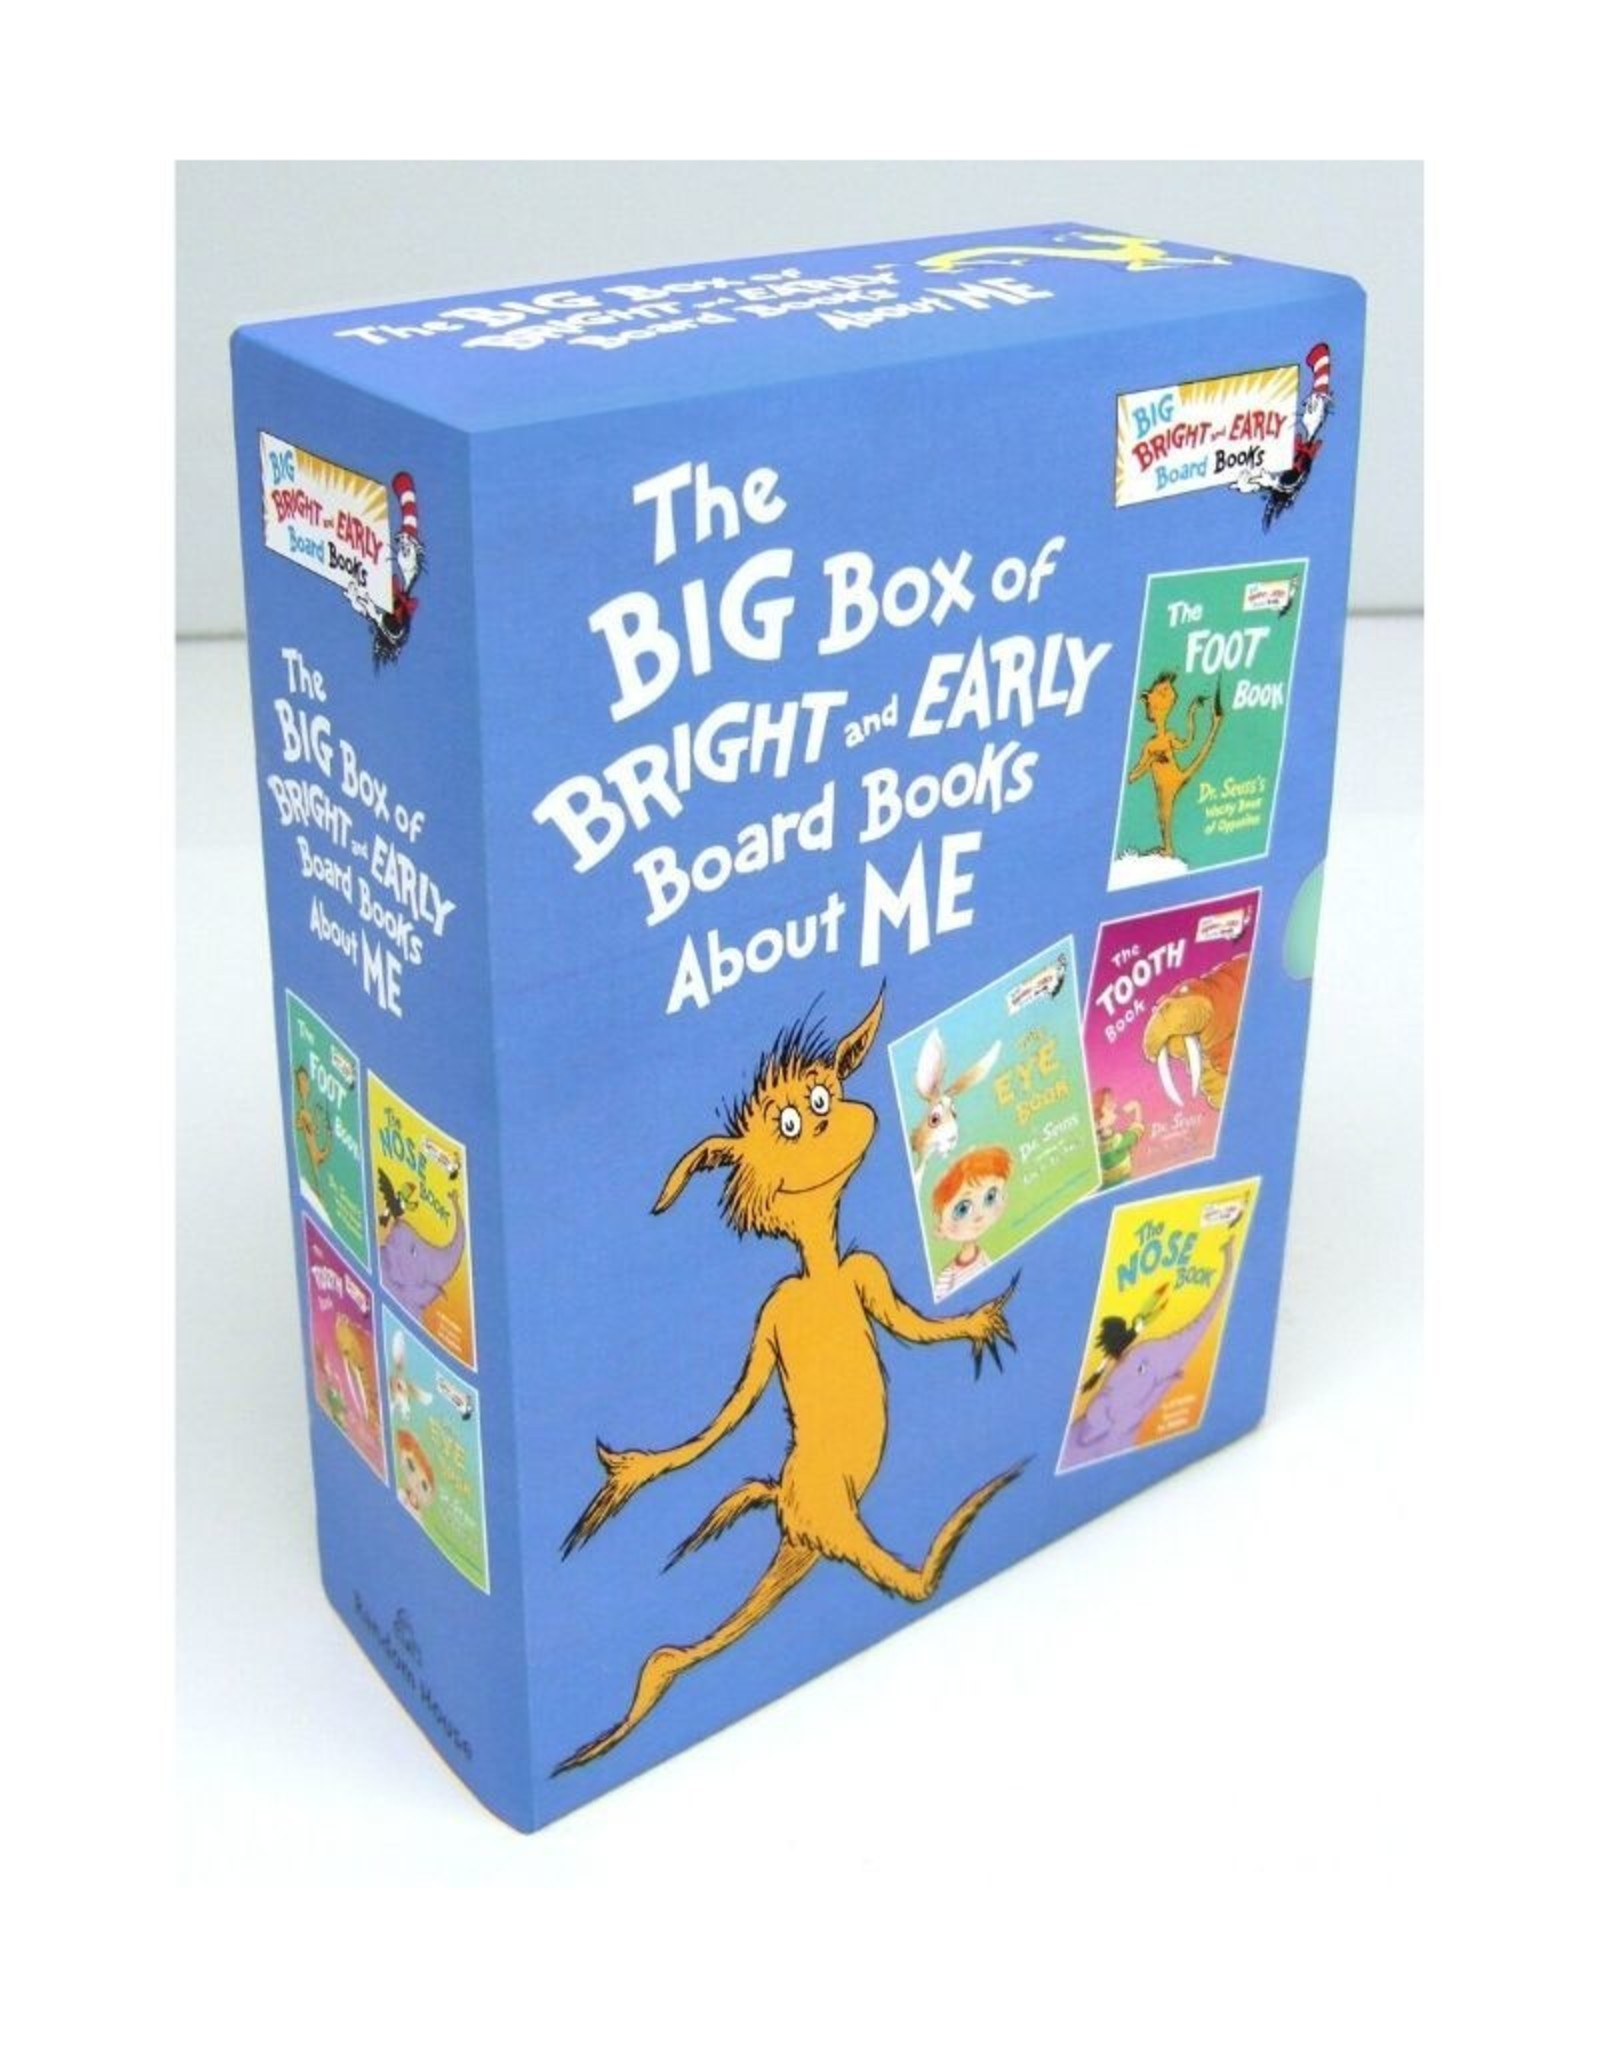 Dr Suess Big Box of Early Books